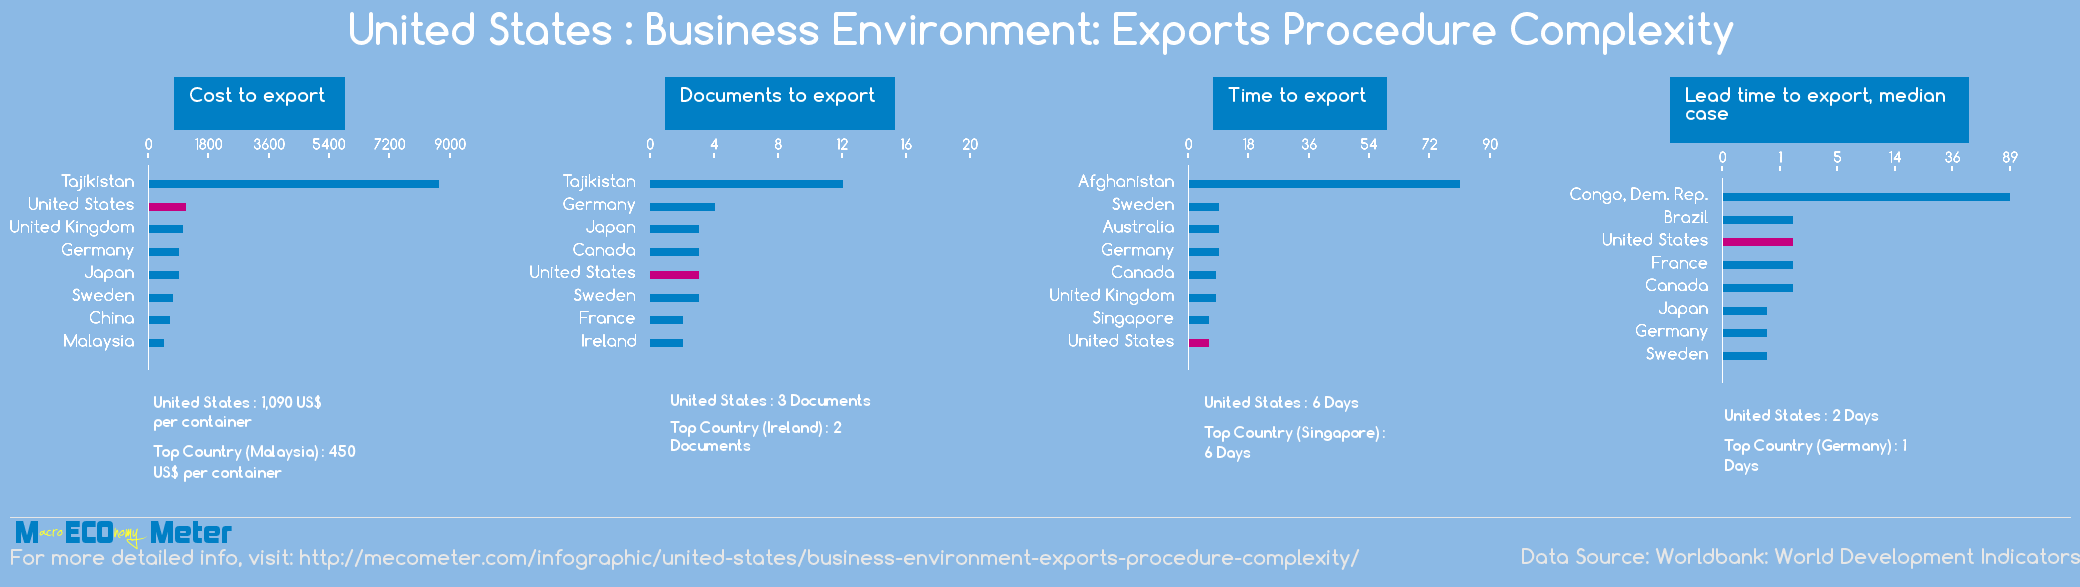 United States : Business Environment: Exports Procedure Complexity